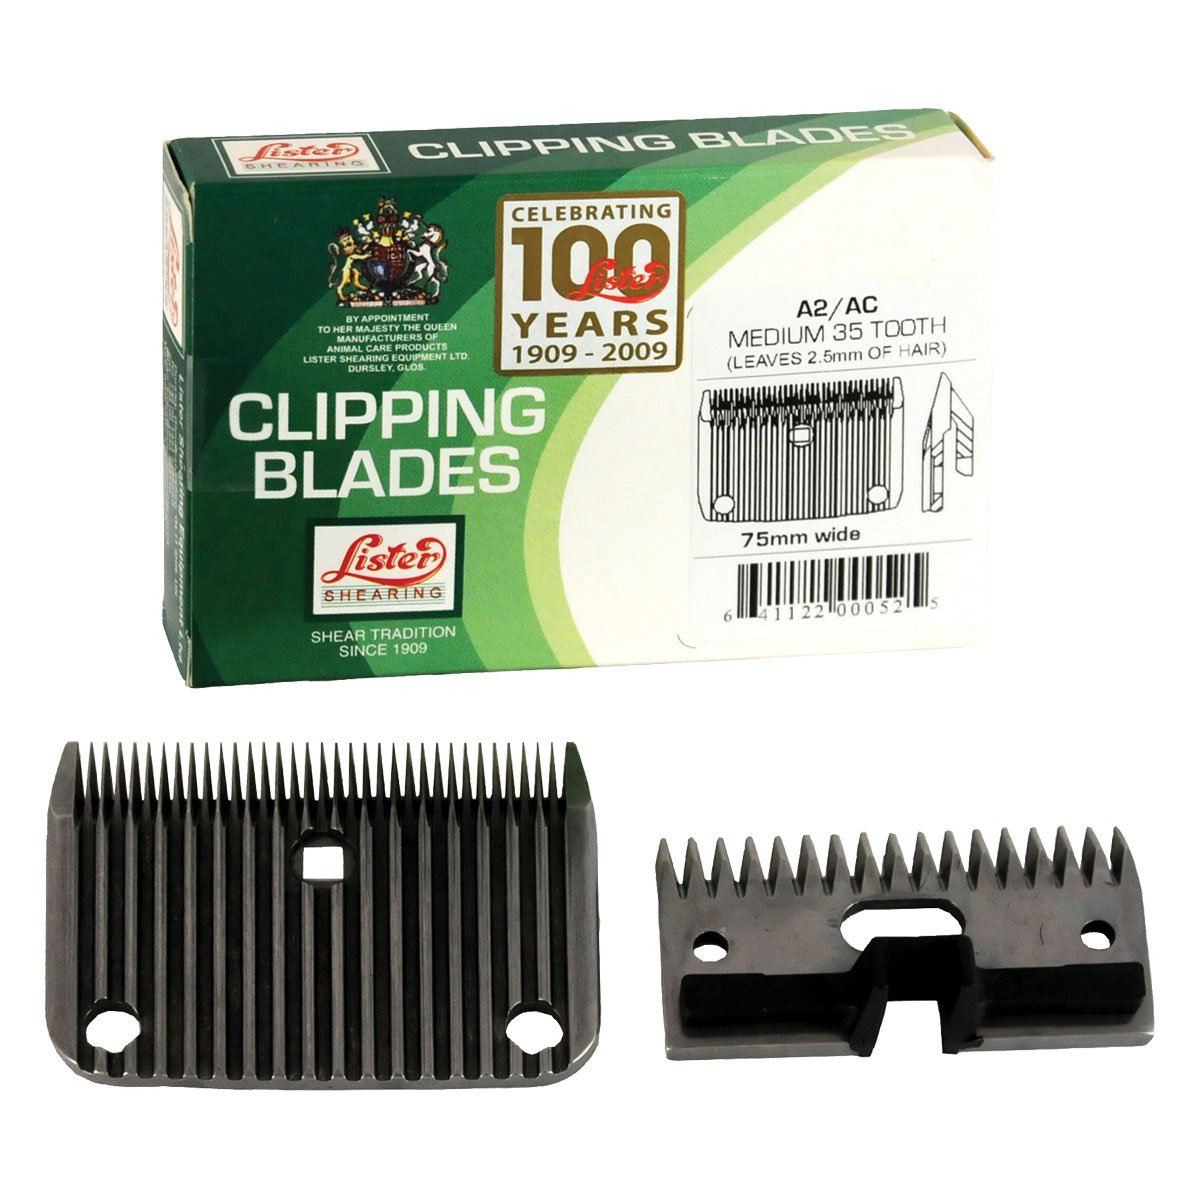 Clipper Blade For Lister Body Clippers, Fine Blade by Lister